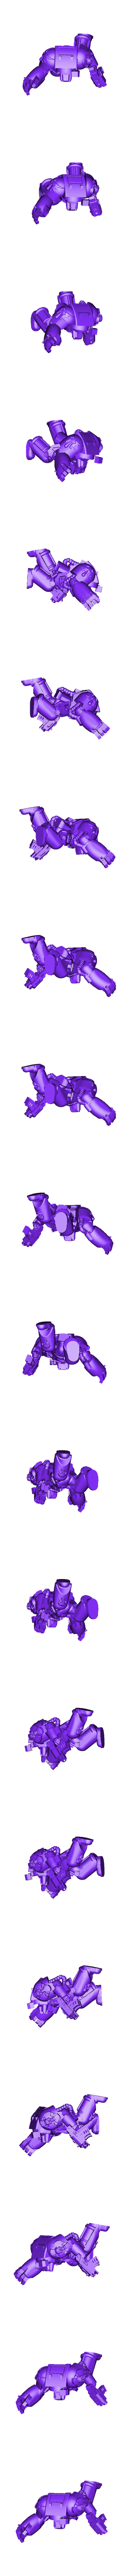 SpaceShipEnterTroop_4_PF_Open_SB_3.stl Download free STL file Bloody Heavily Armoured Space Soldiers • 3D print object, PhysUdo